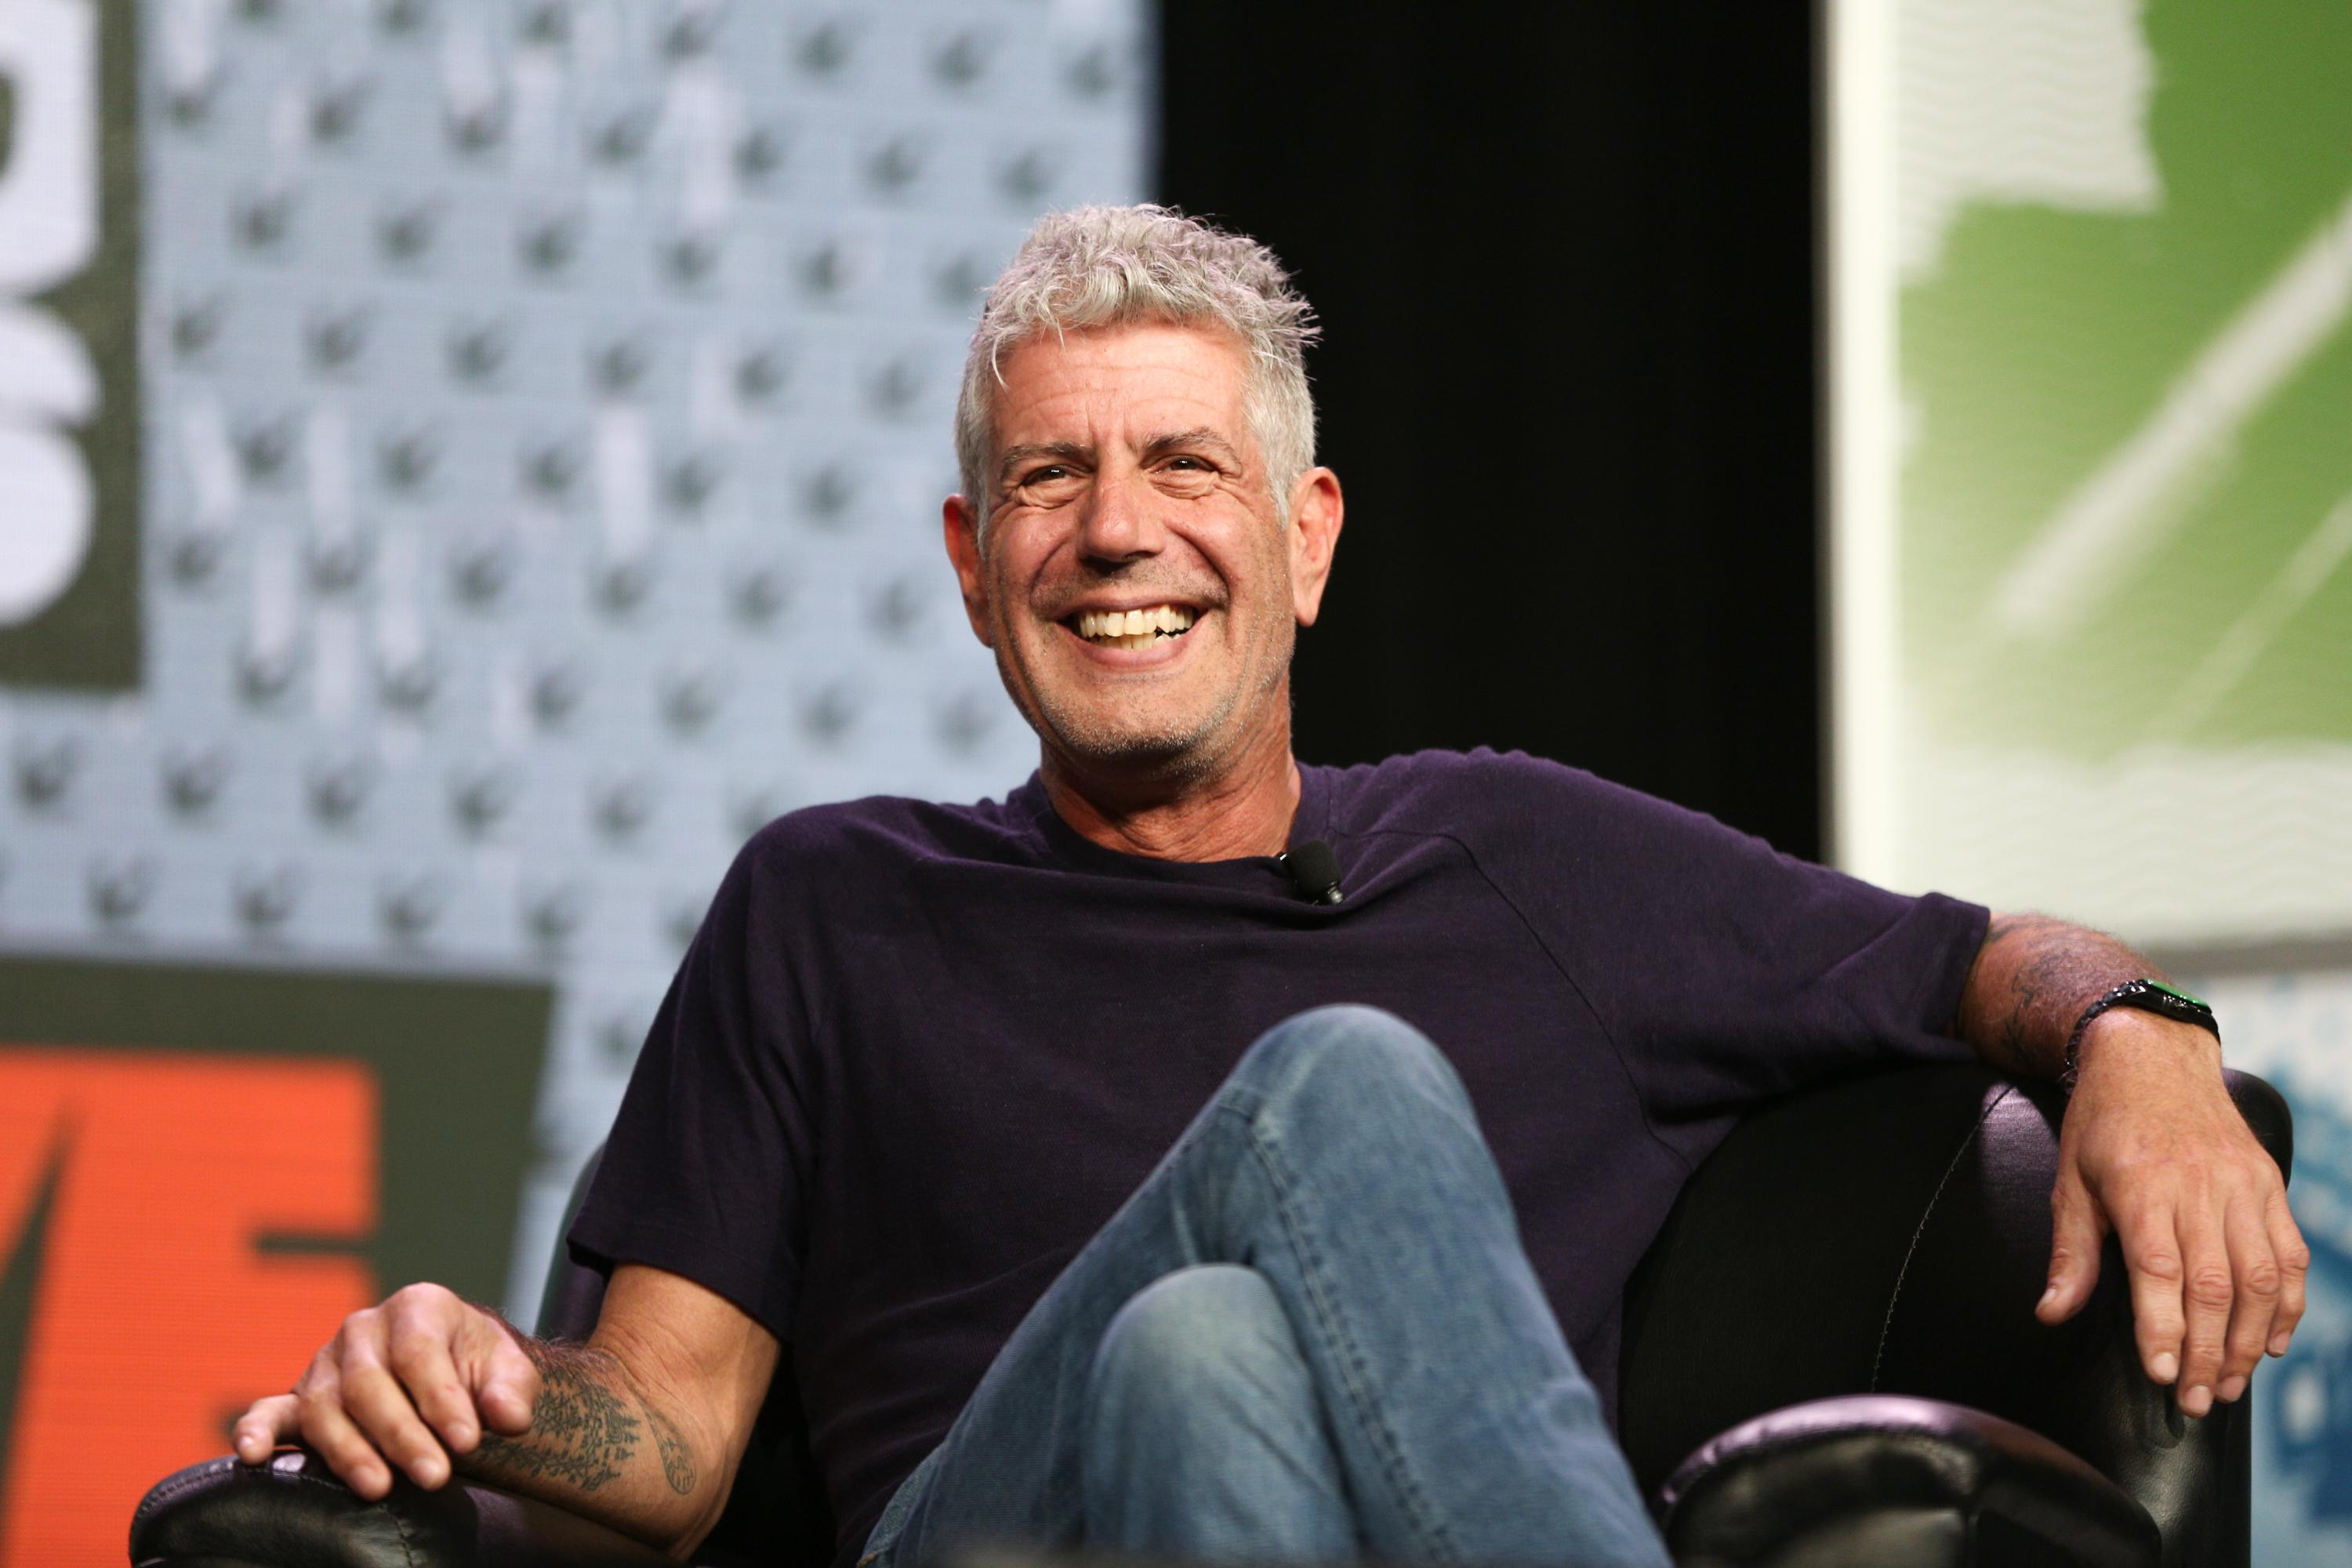 Anthony Bourdain dead at 61: Remembrances pour in for celebrity chef and CNN host